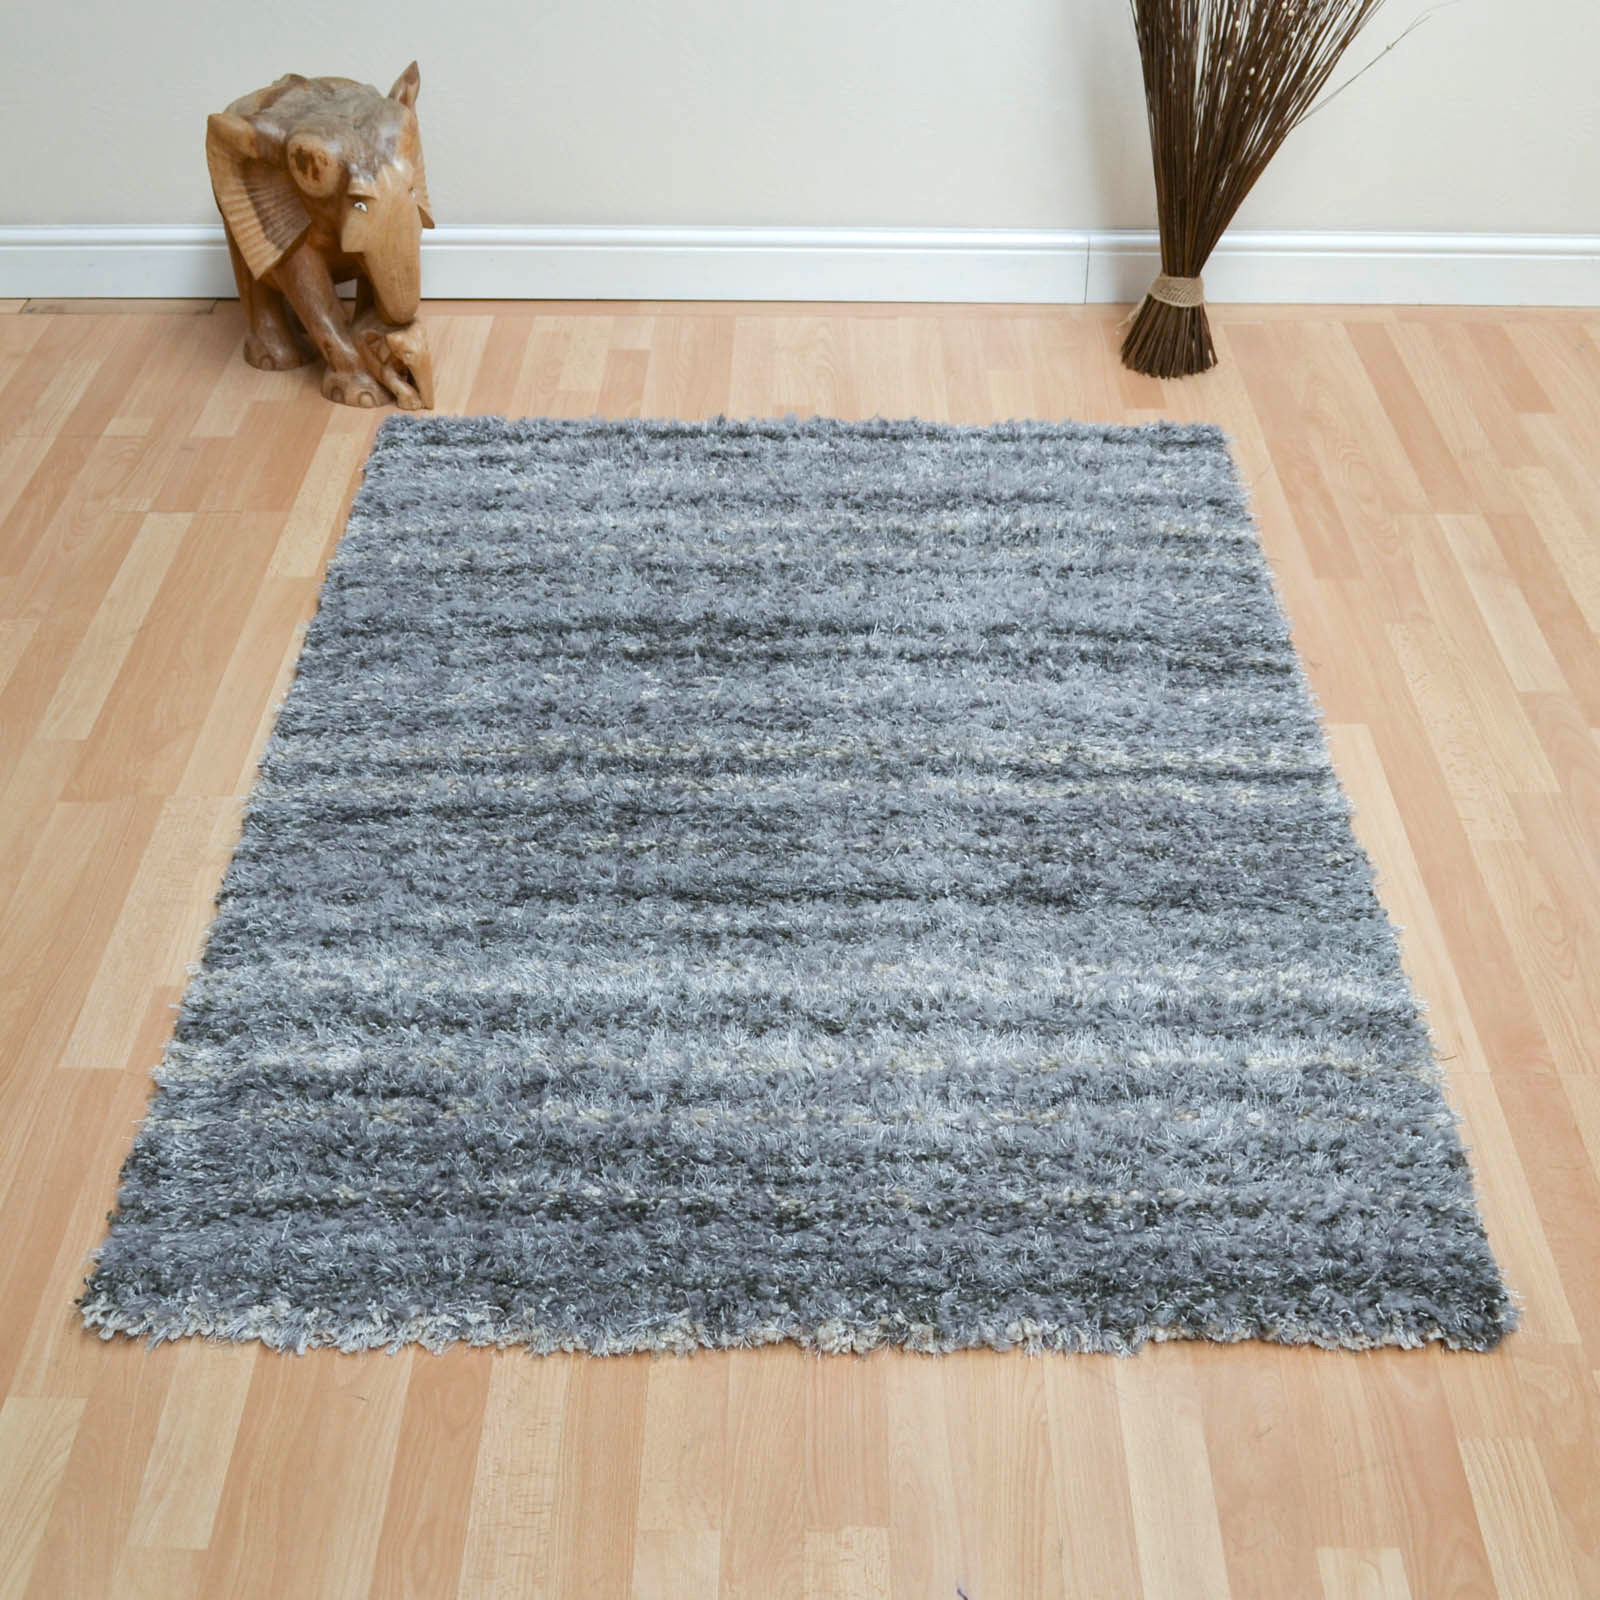 Magnificent Rugs in Silver